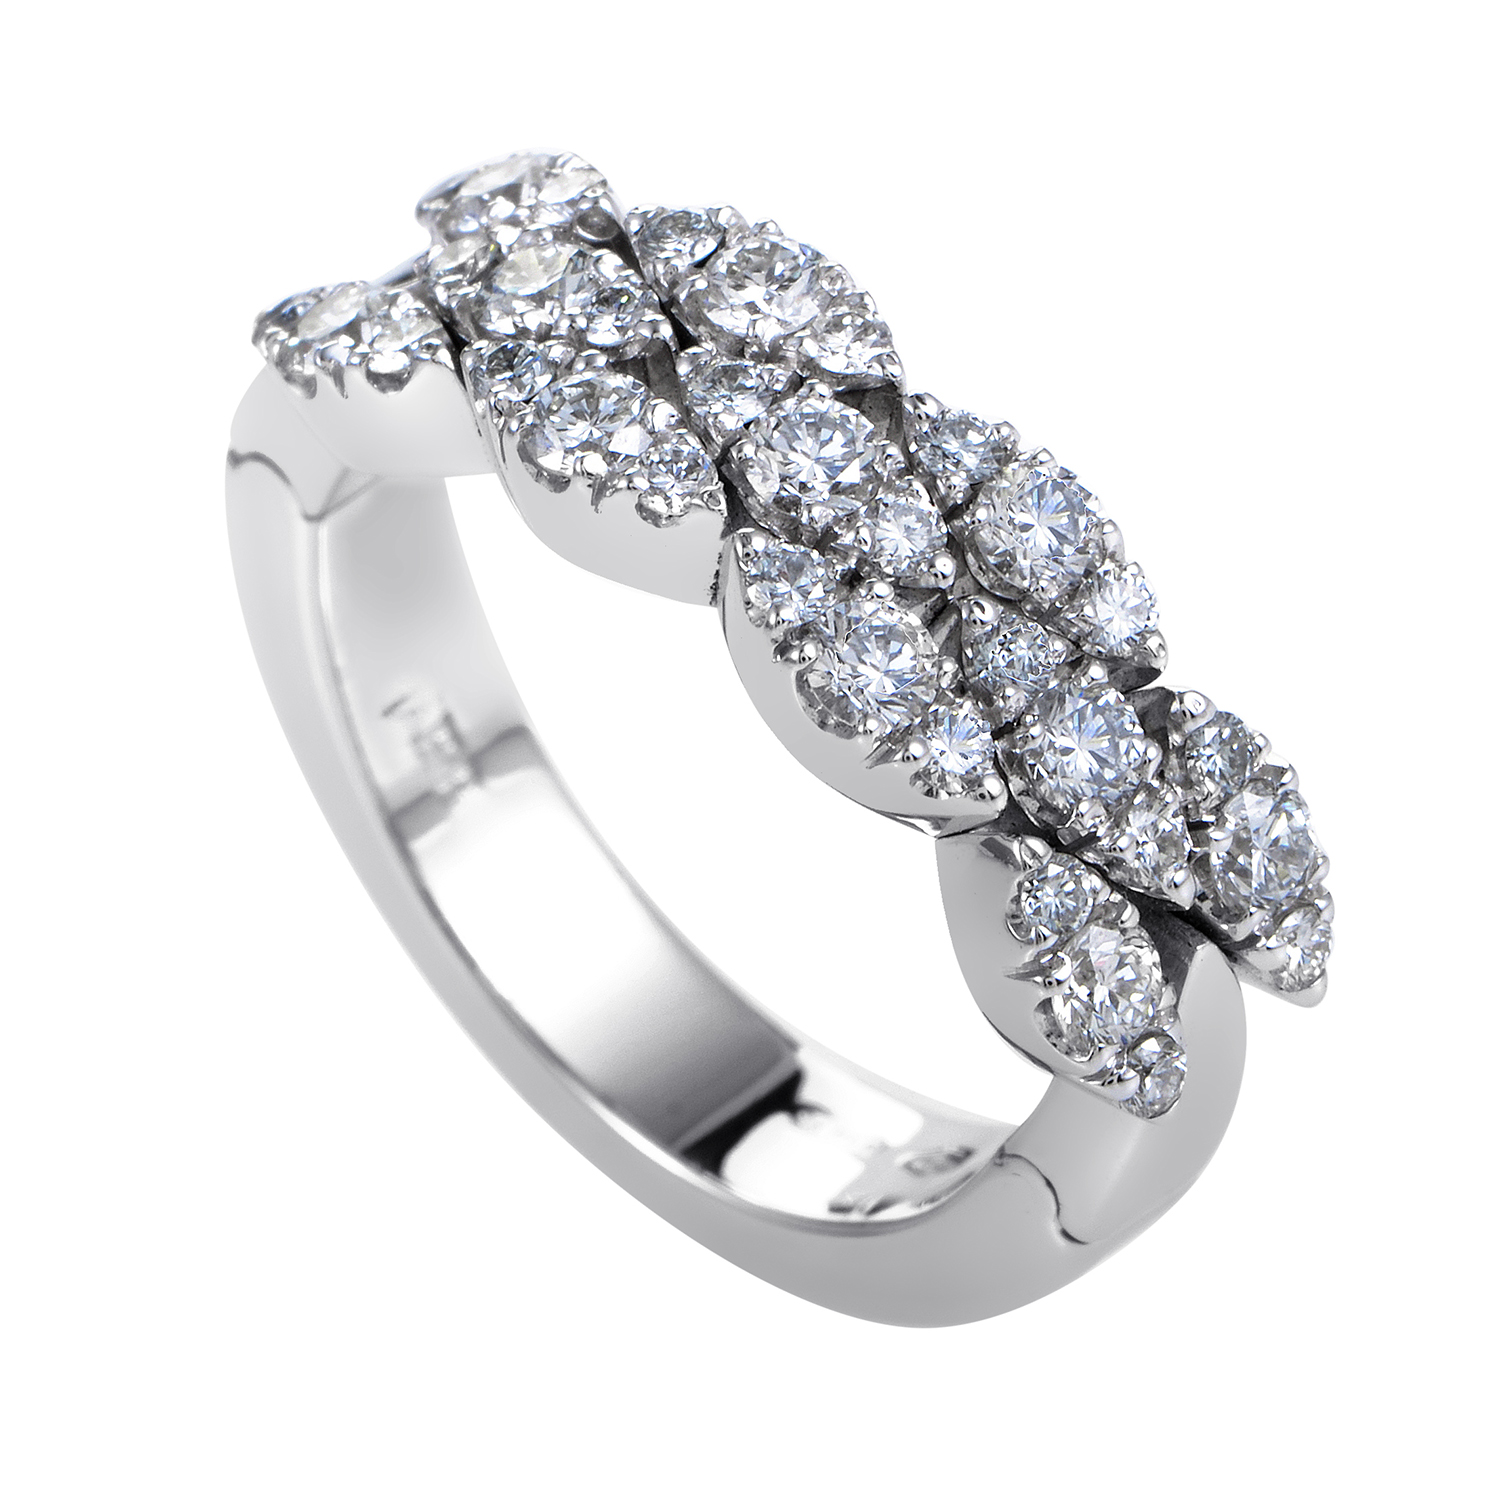 Ghirlanda Women's 18K White Gold Diamond Band Ring